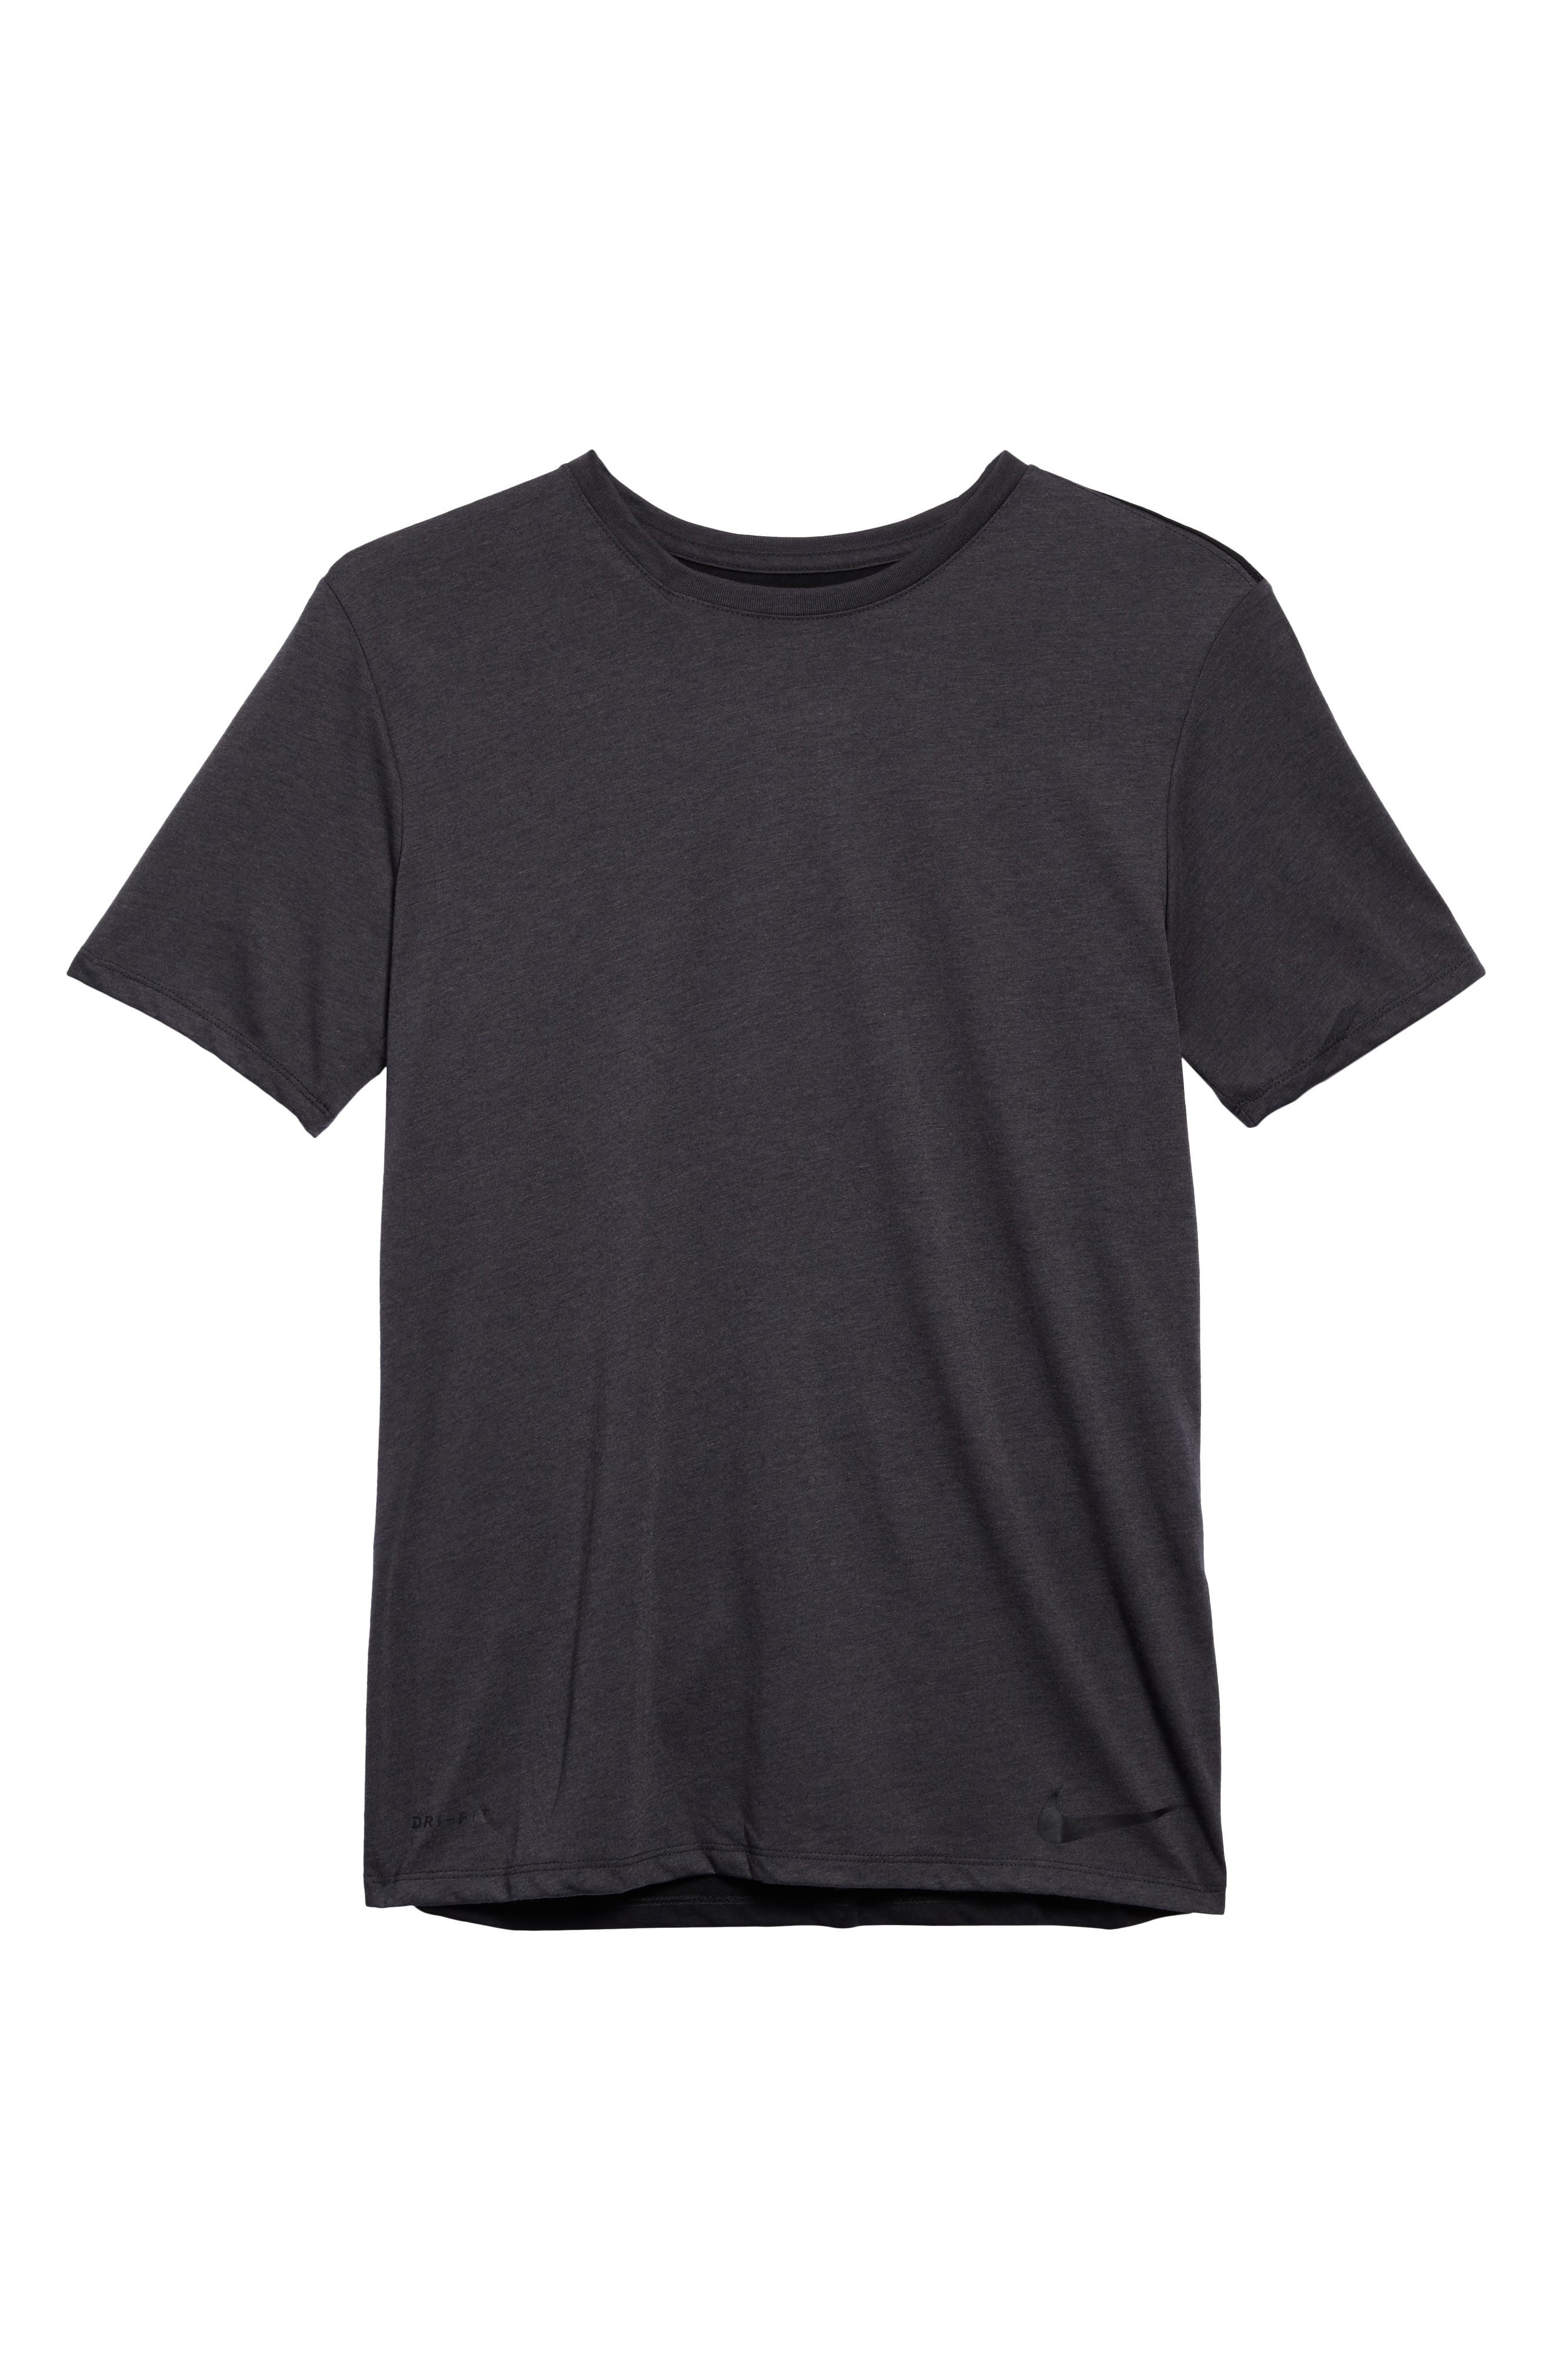 Training Dry Project X T-Shirt,                             Alternate thumbnail 6, color,                             ANTHRACITE/ BLACK